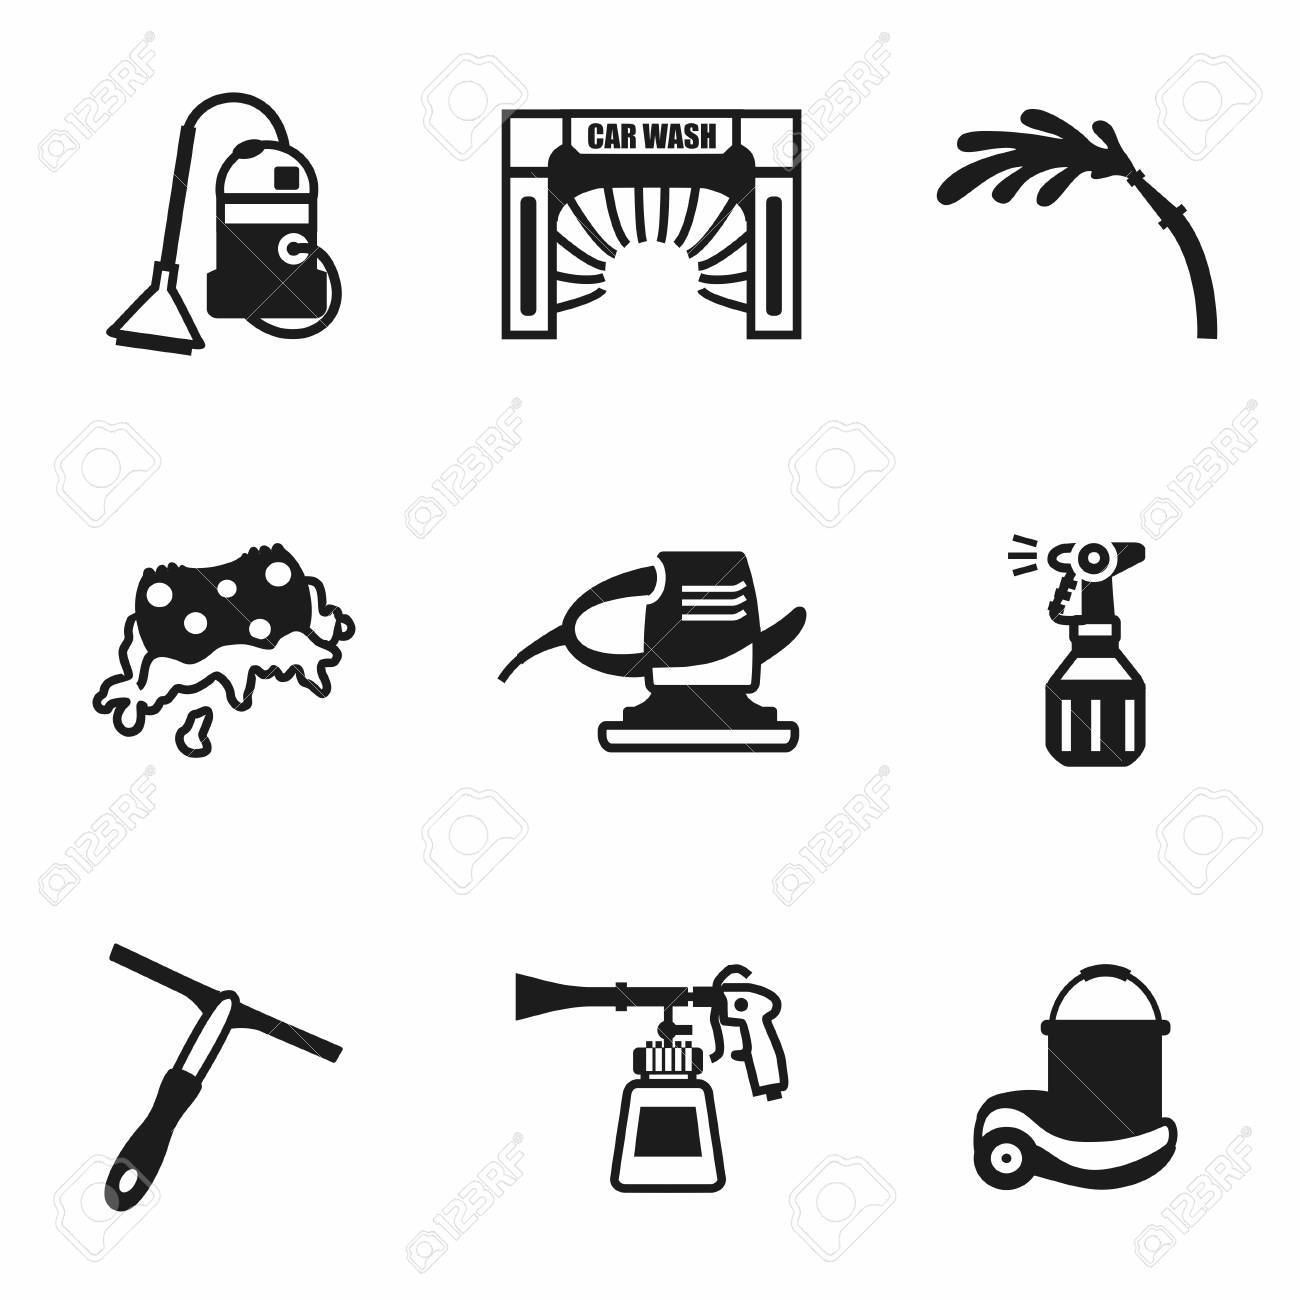 Vector Car Wash Icon Set On White Background Royalty Free Cliparts